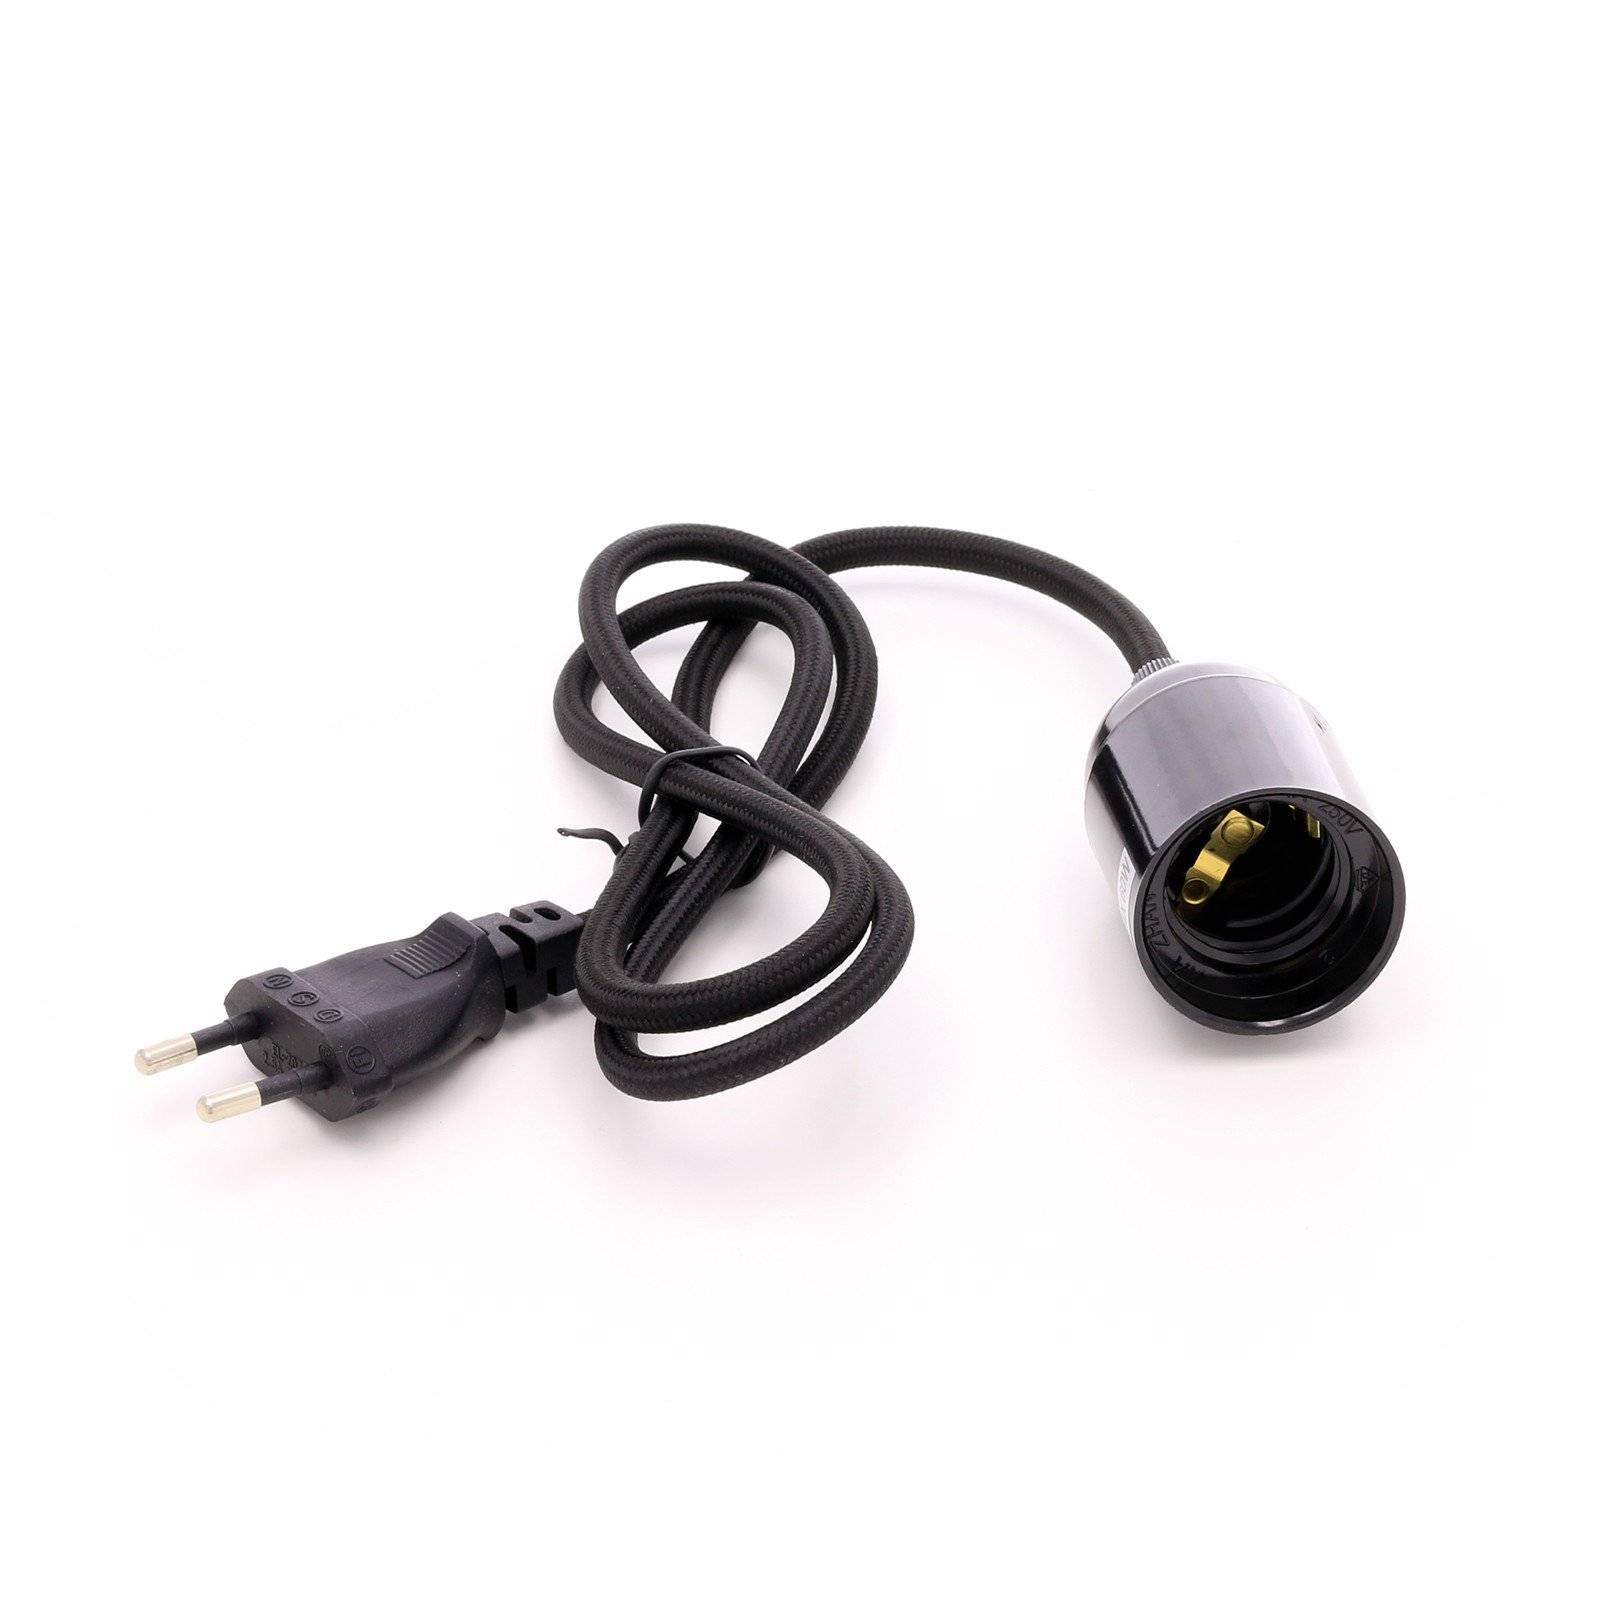 pack ampoule horticole led x30 pour une plante 80cm x 80cm avec c ble et prise boutique floraled. Black Bedroom Furniture Sets. Home Design Ideas